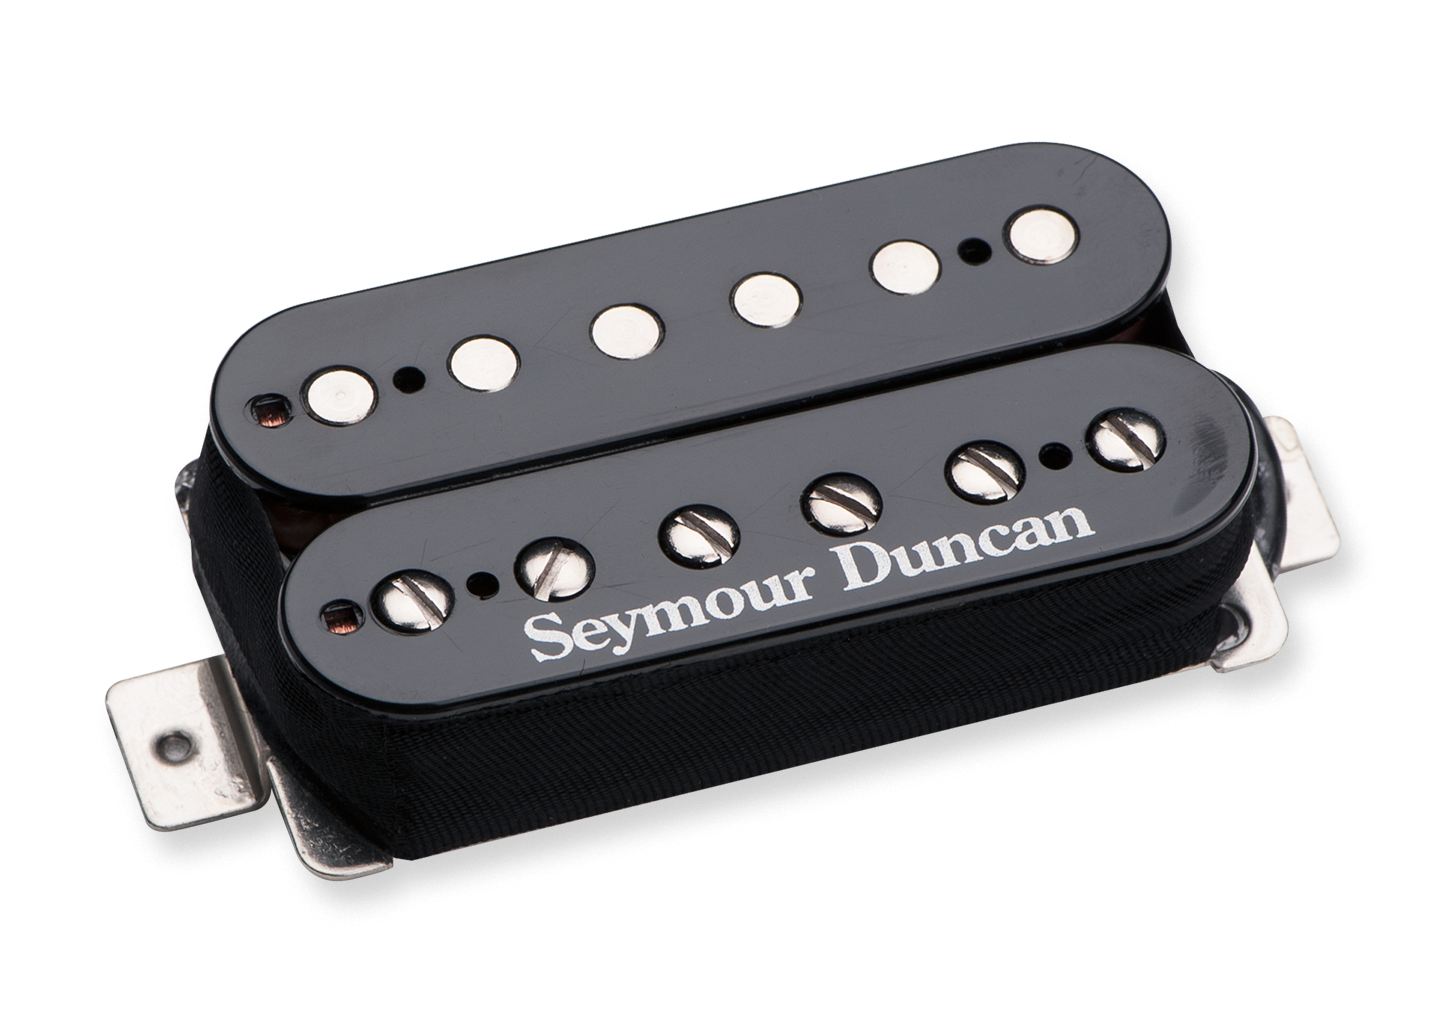 Seymour Duncan Blackouts Coil Pack Humbucker (AHB-10)